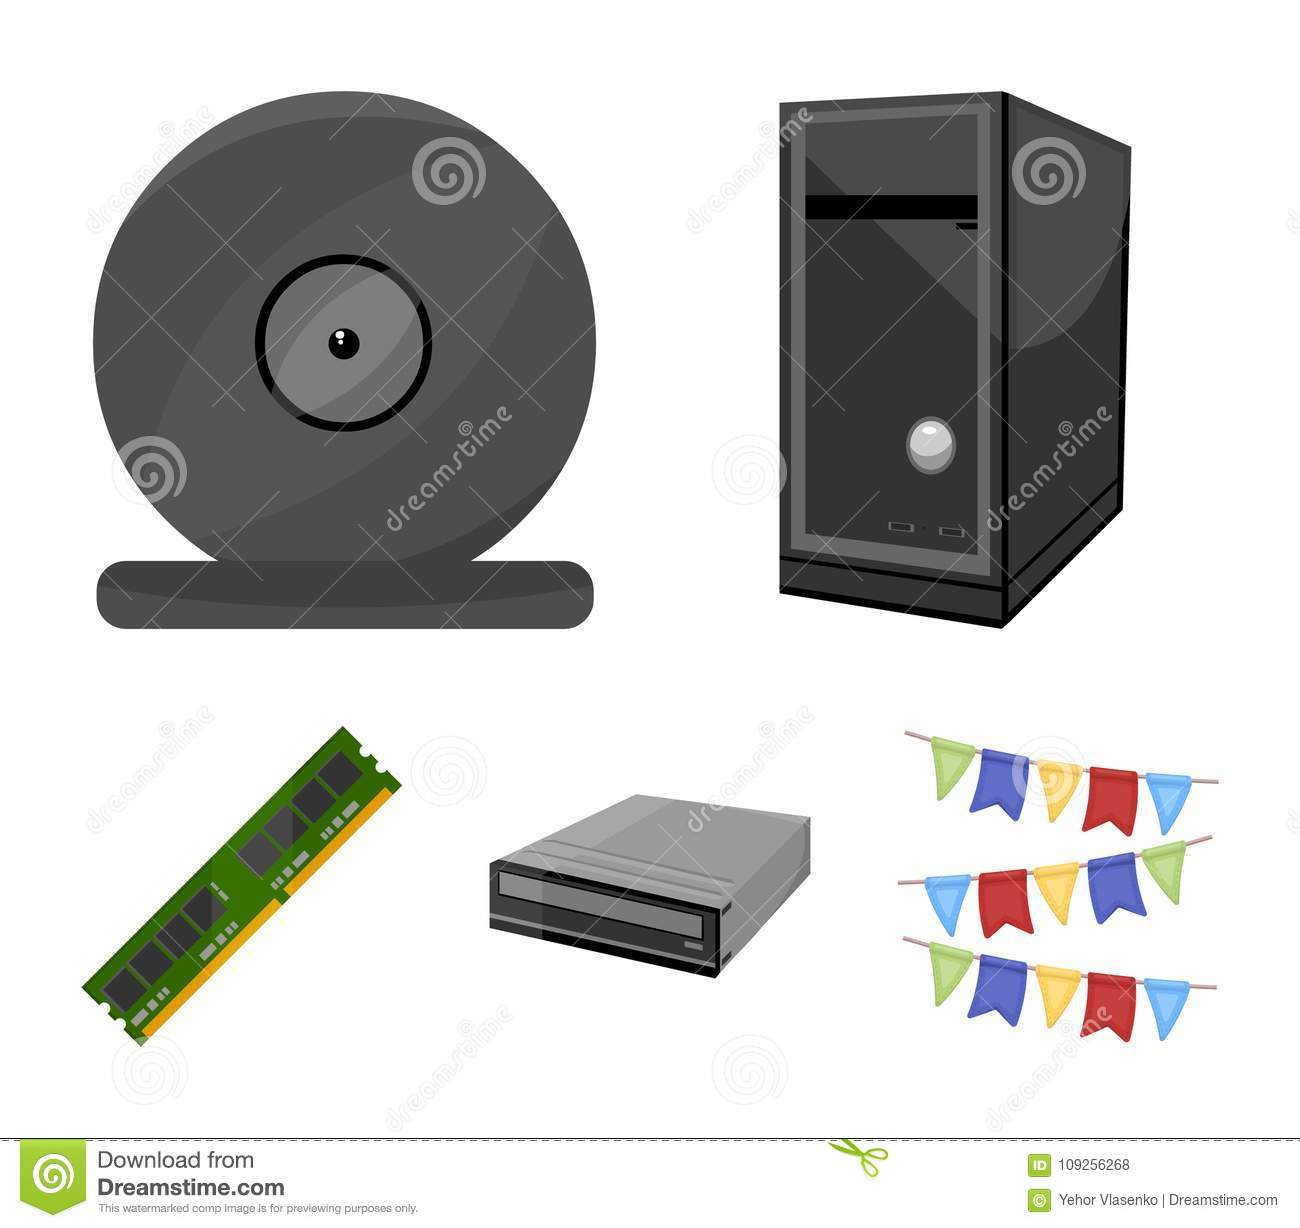 System Unit Memory Card And Other Equipment Personal